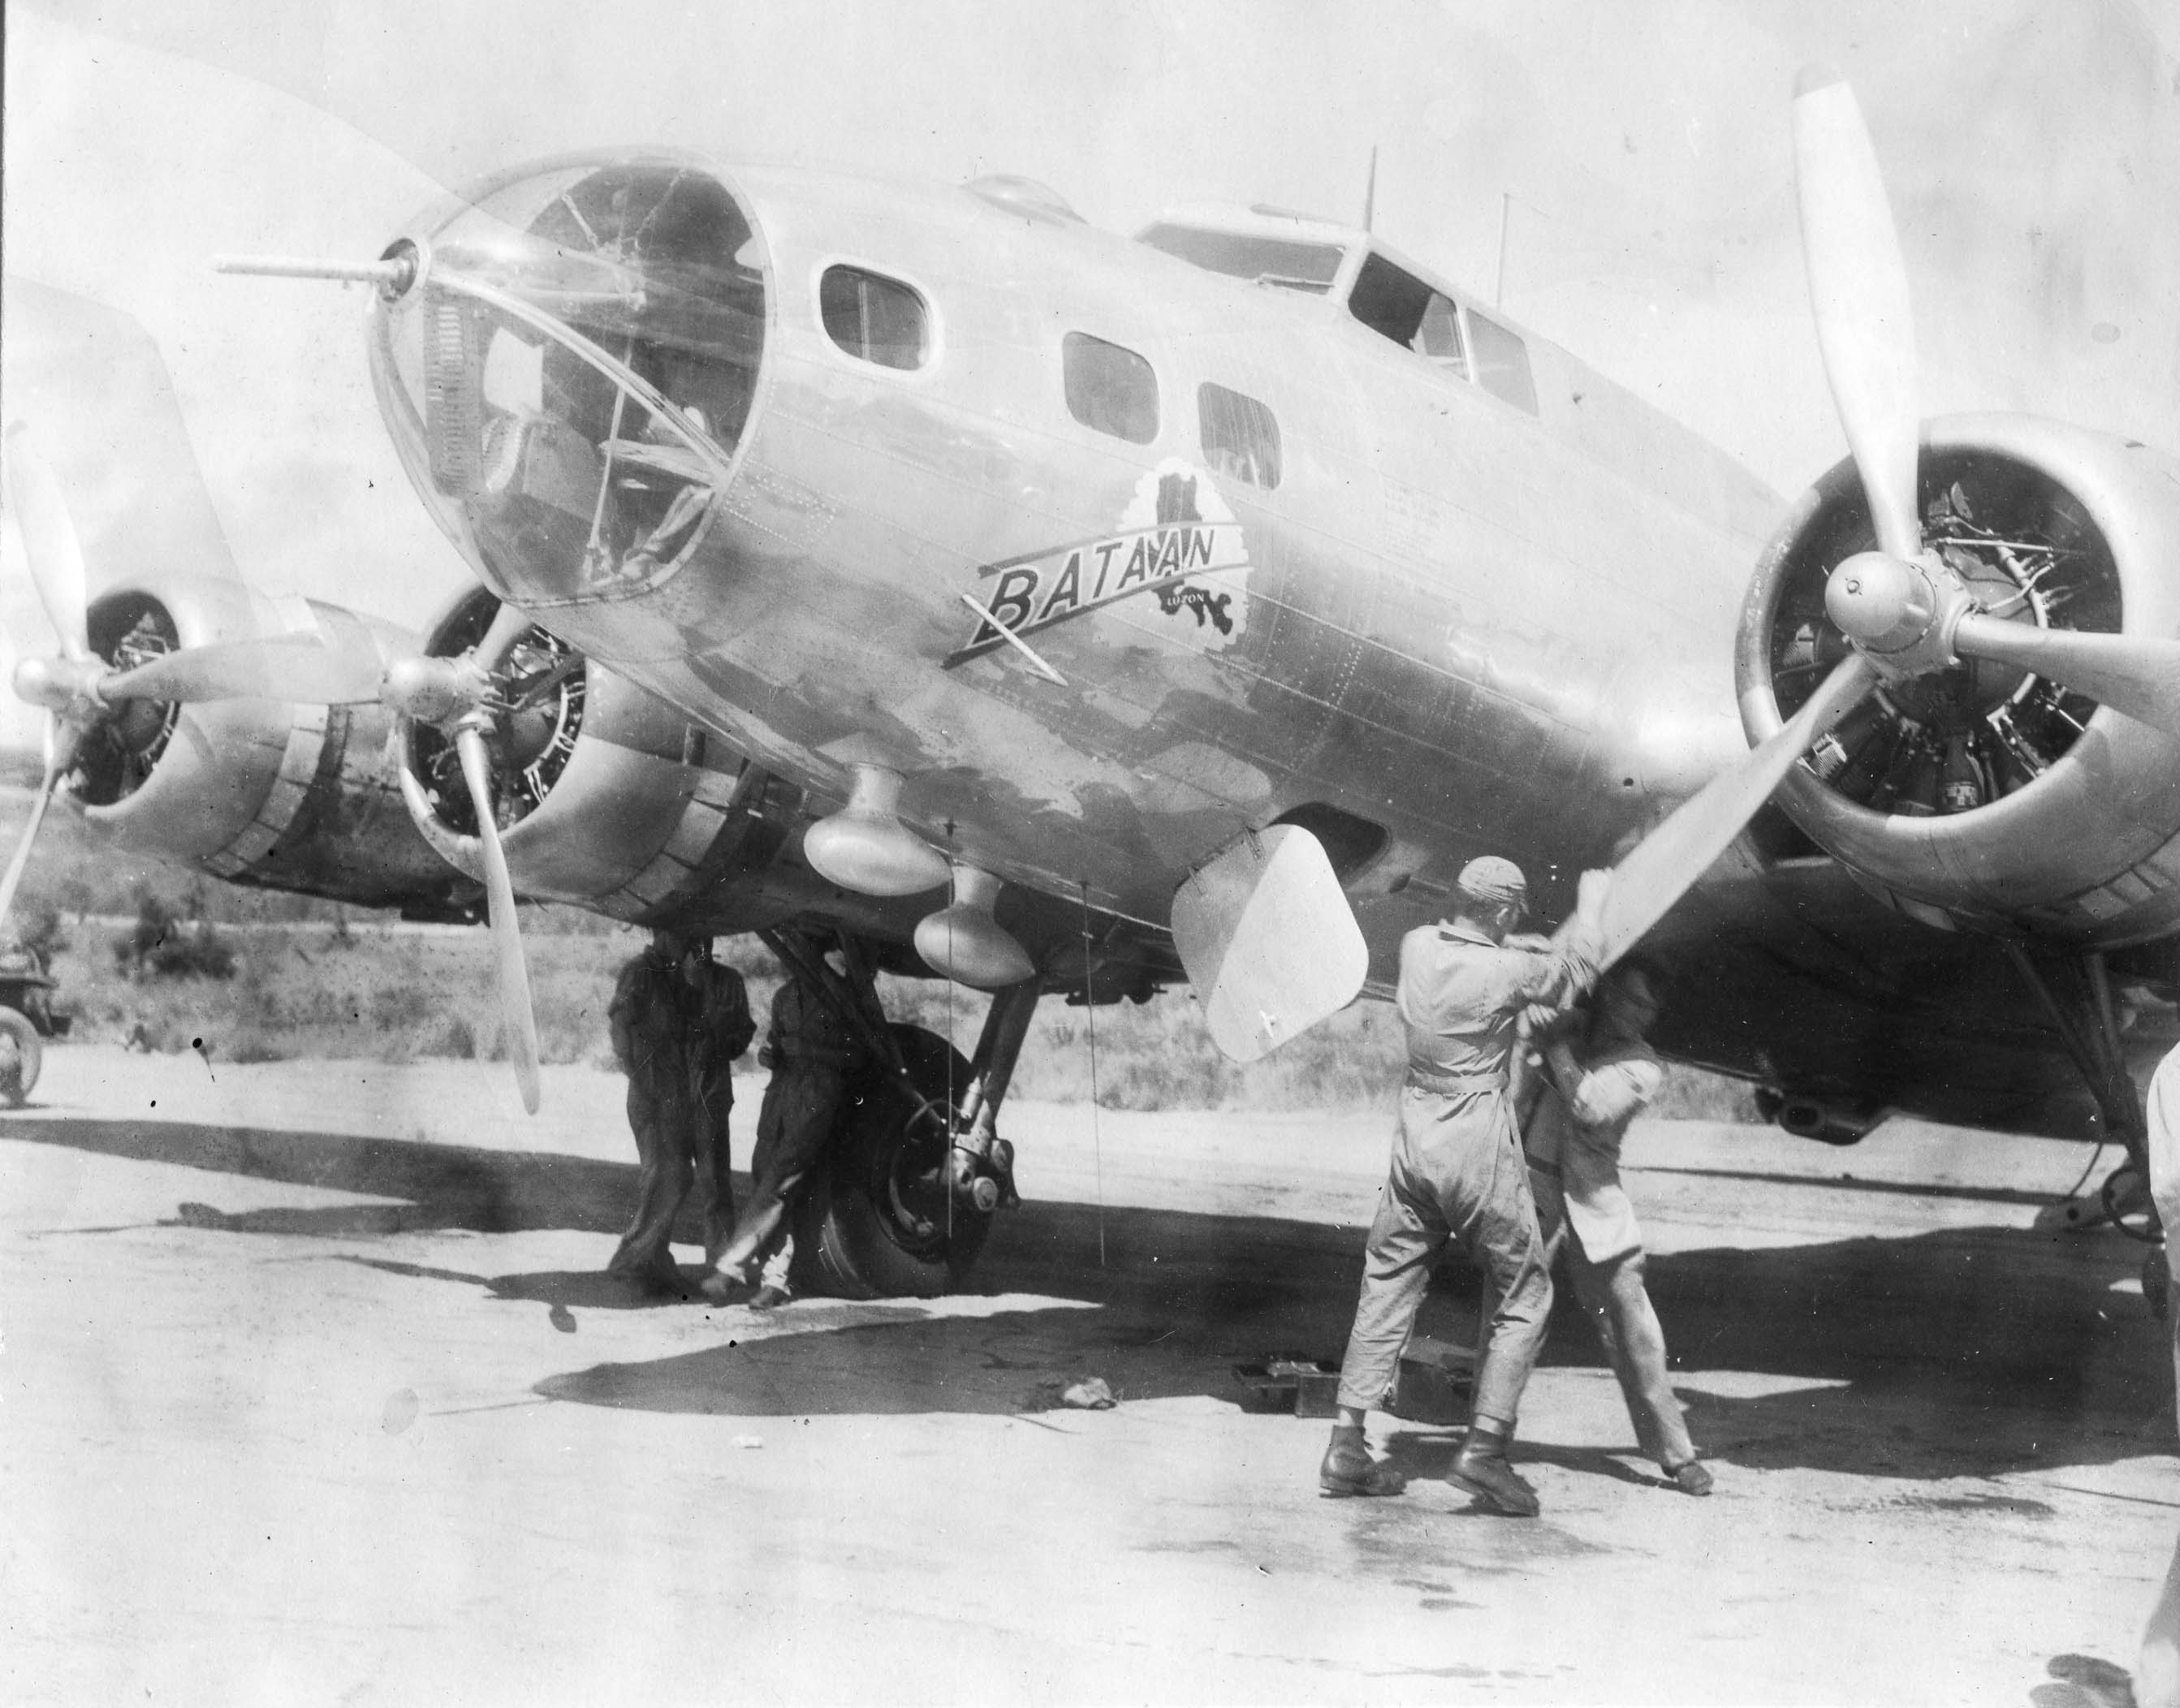 Bataan : B-17 : General Headquarters, SWPA : Sharpe 6 (Thomas Sharpe Collection) :